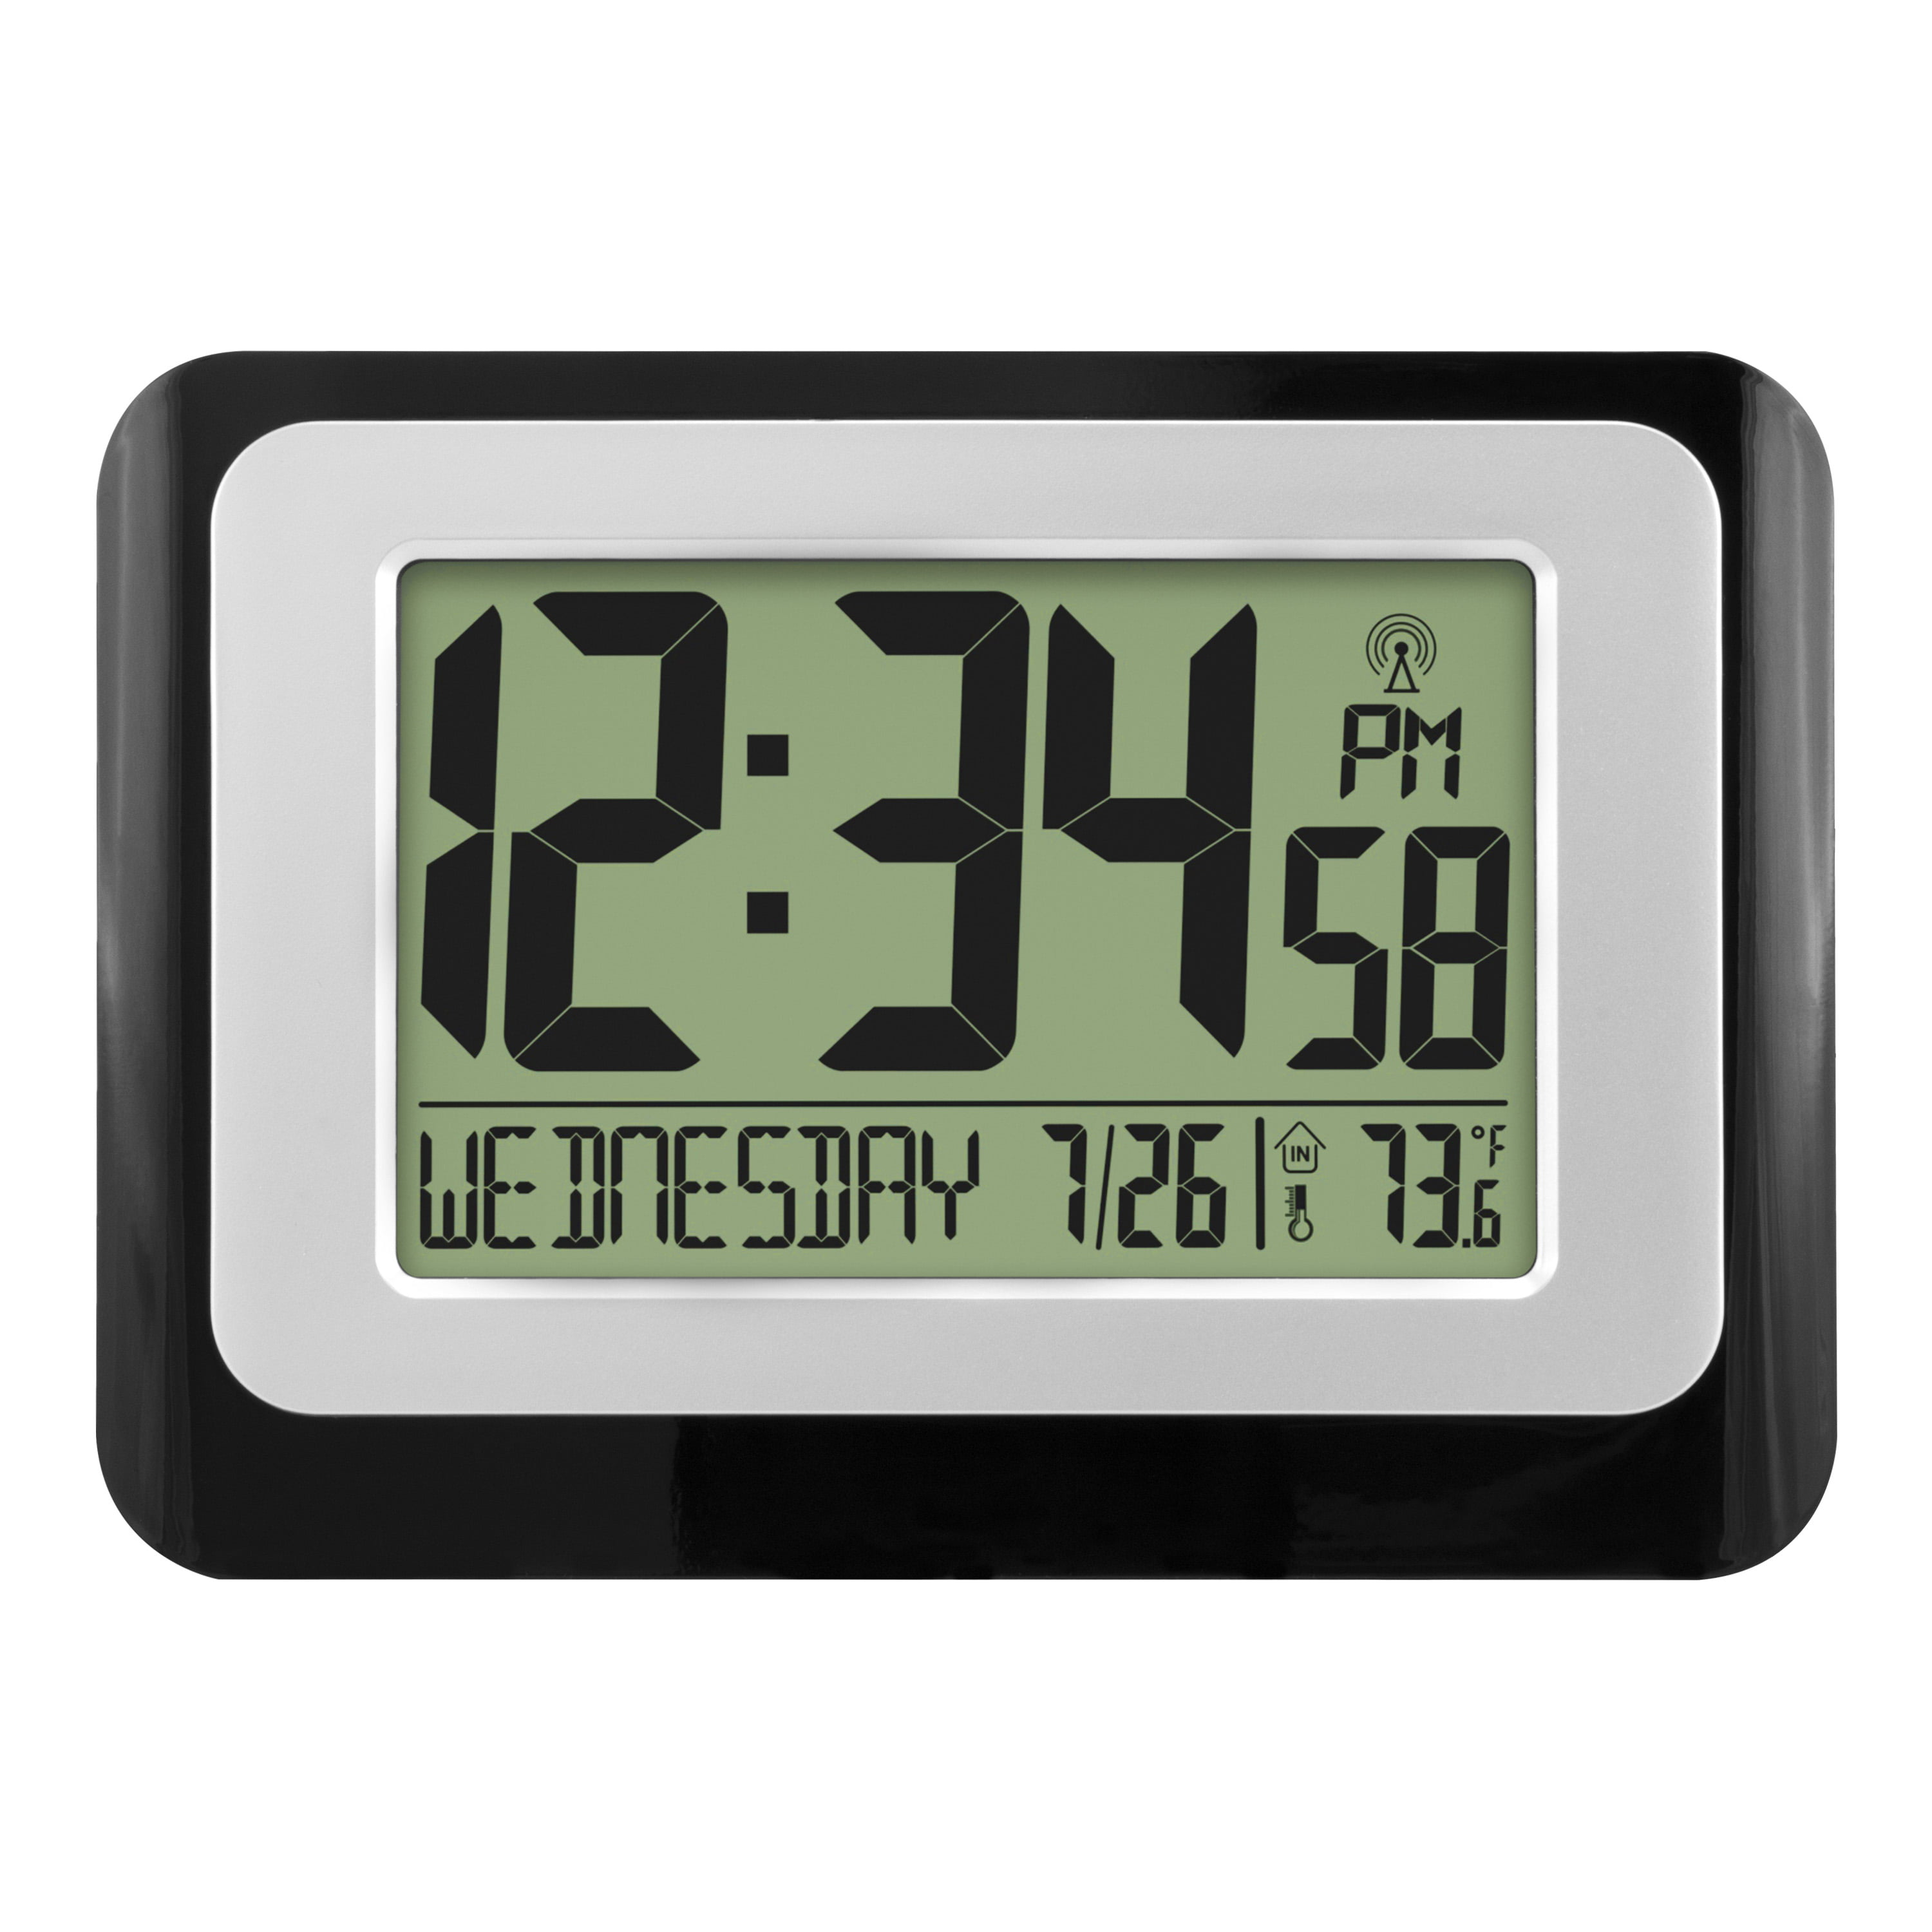 Digital Atomic Calendar Clock with Indoor Temperature by La Crosse Technology Ltd.